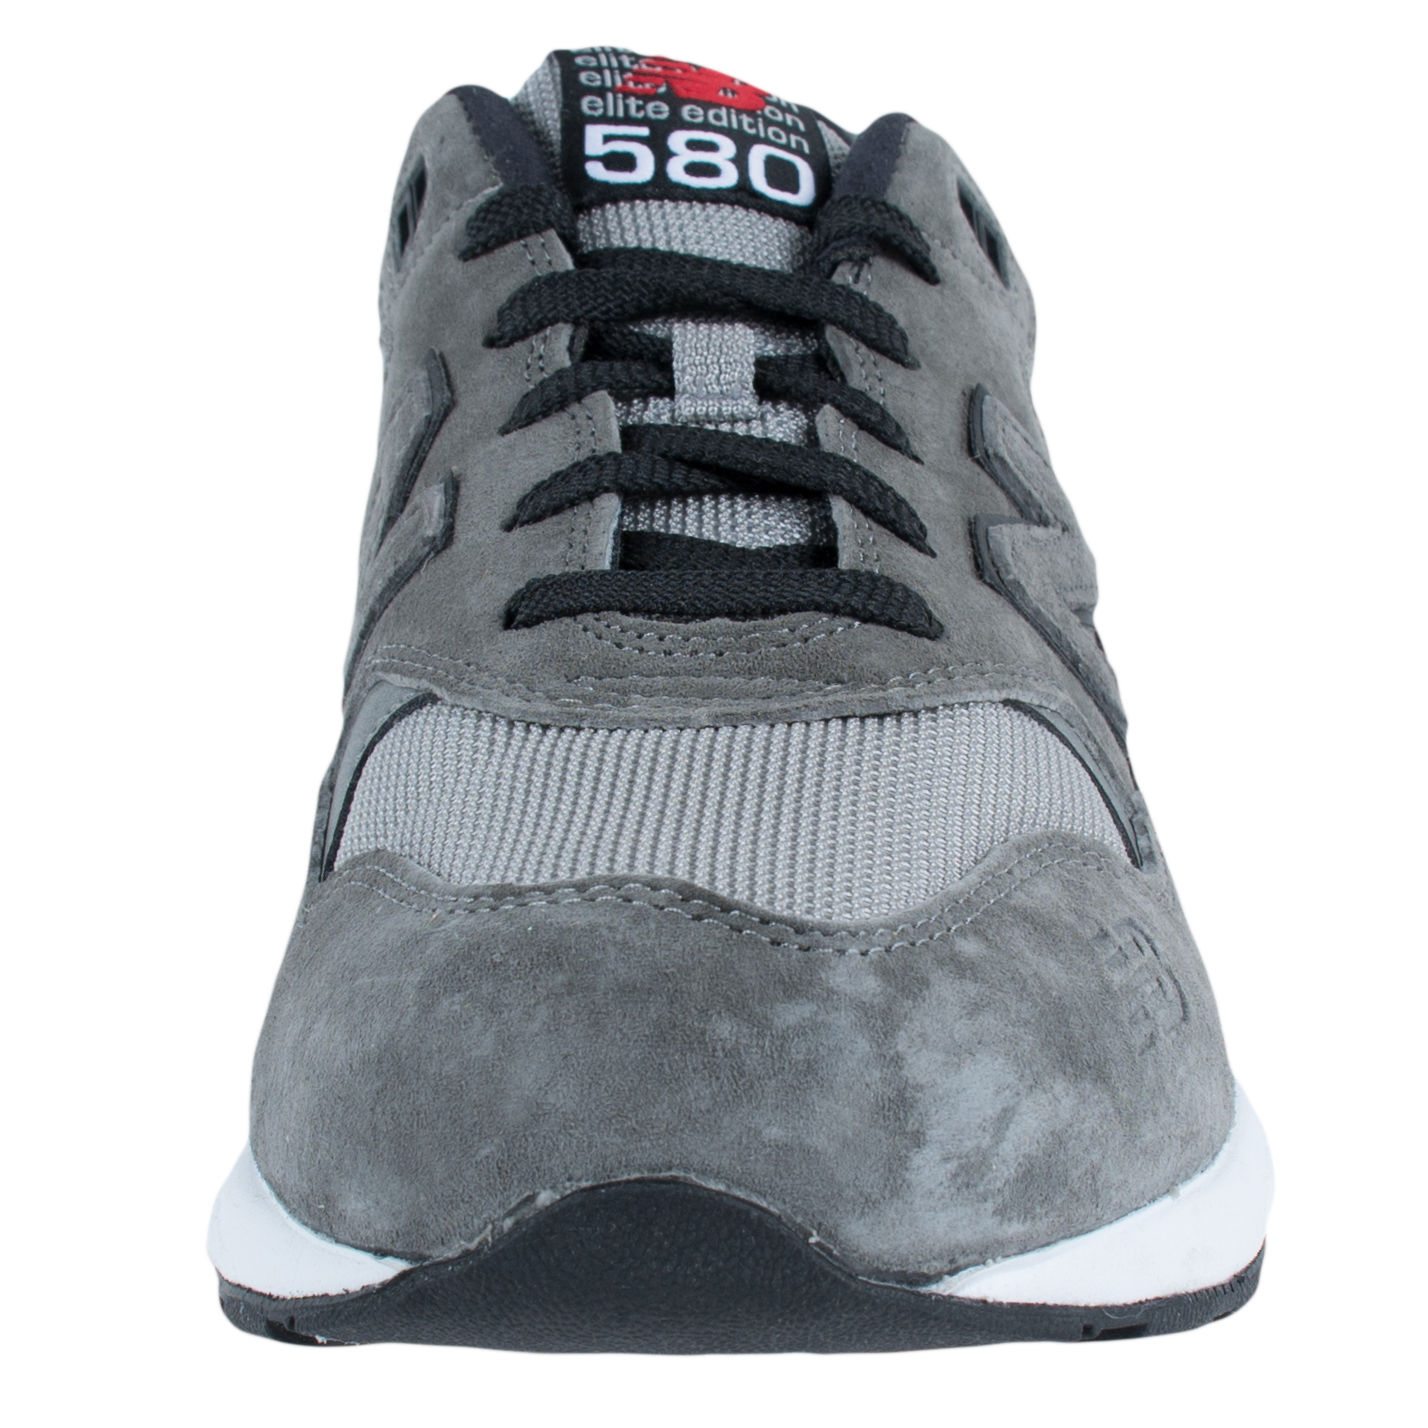 NEW BALANCE ELITE EDITION 580 CASUAL RUNNING SNEAKERS CHARCOAL RED MRT580GK